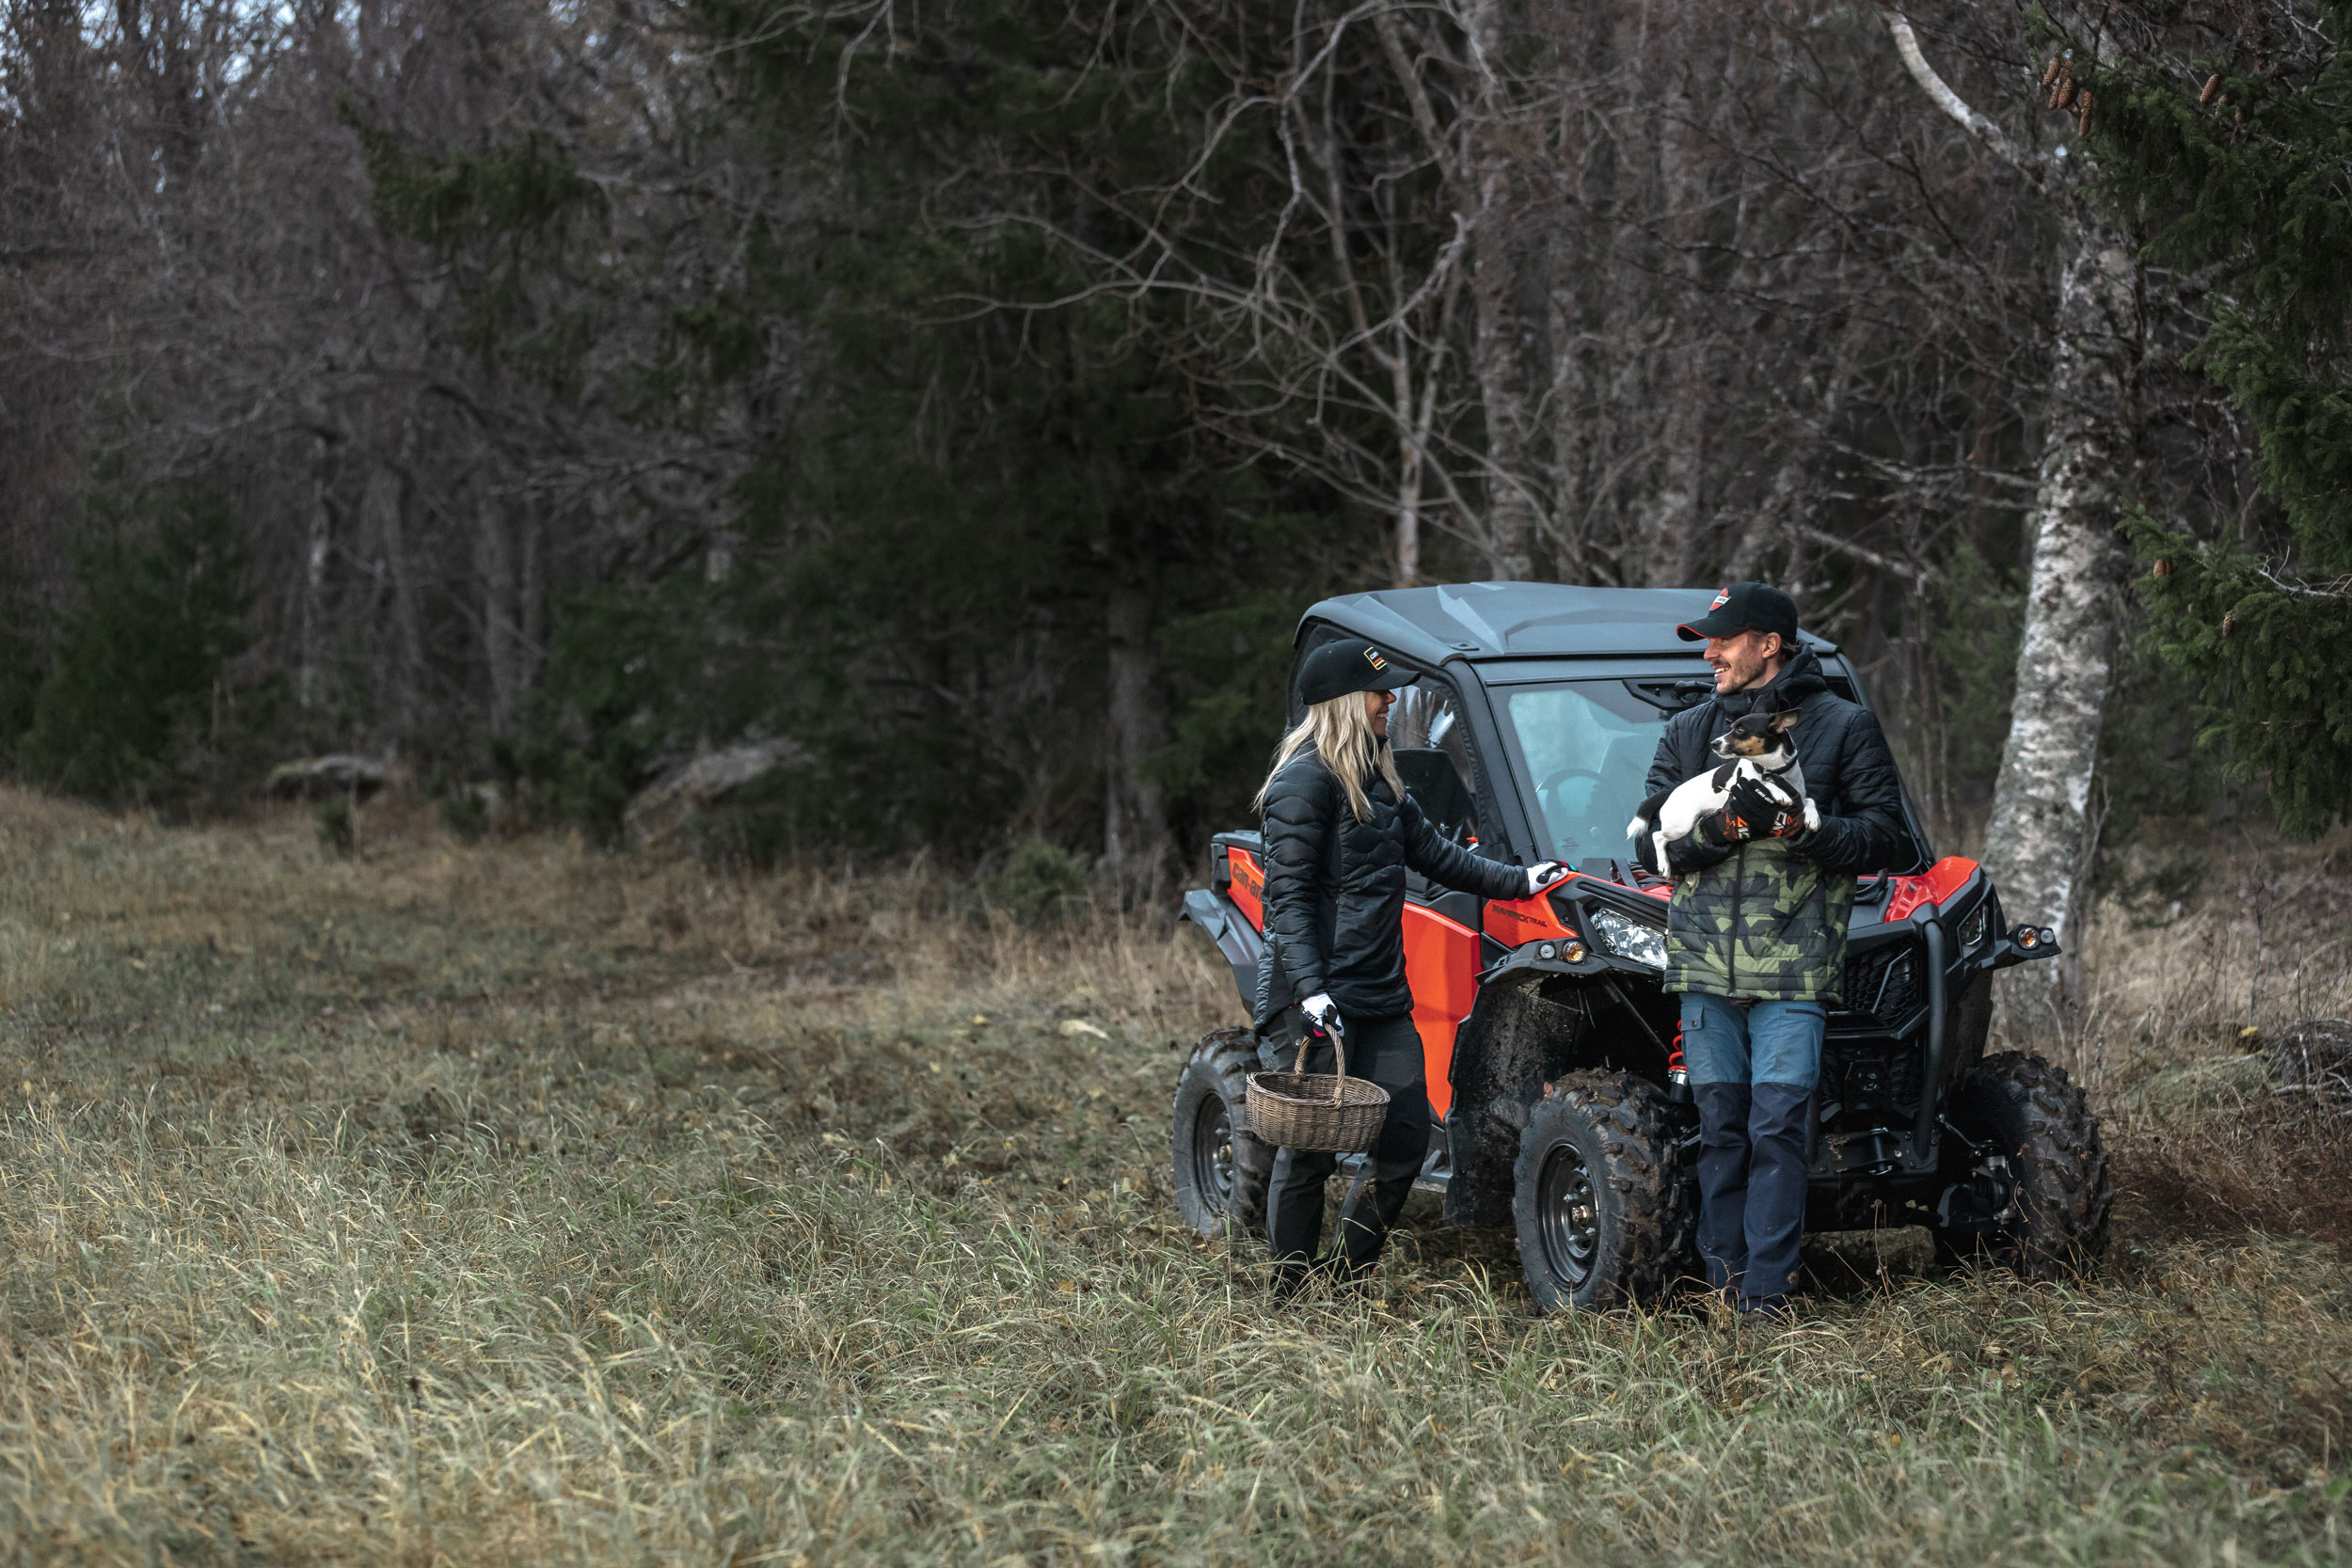 Can-Am Maverick Trail equipment and accessories